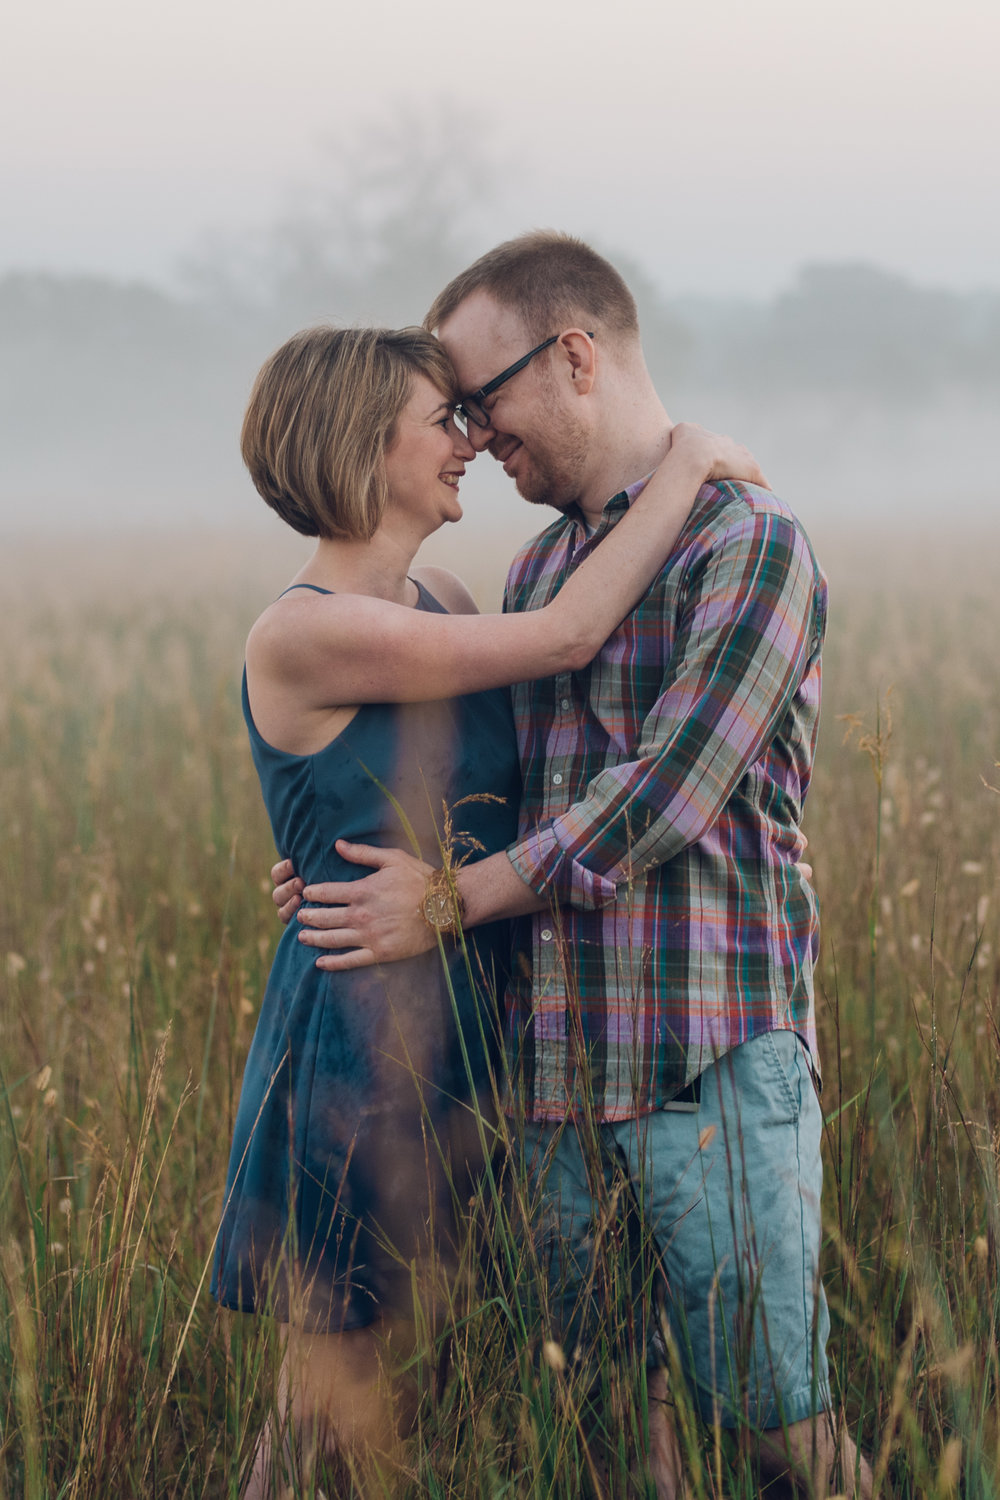 Manassas Battlefield engagement photos in Manassas